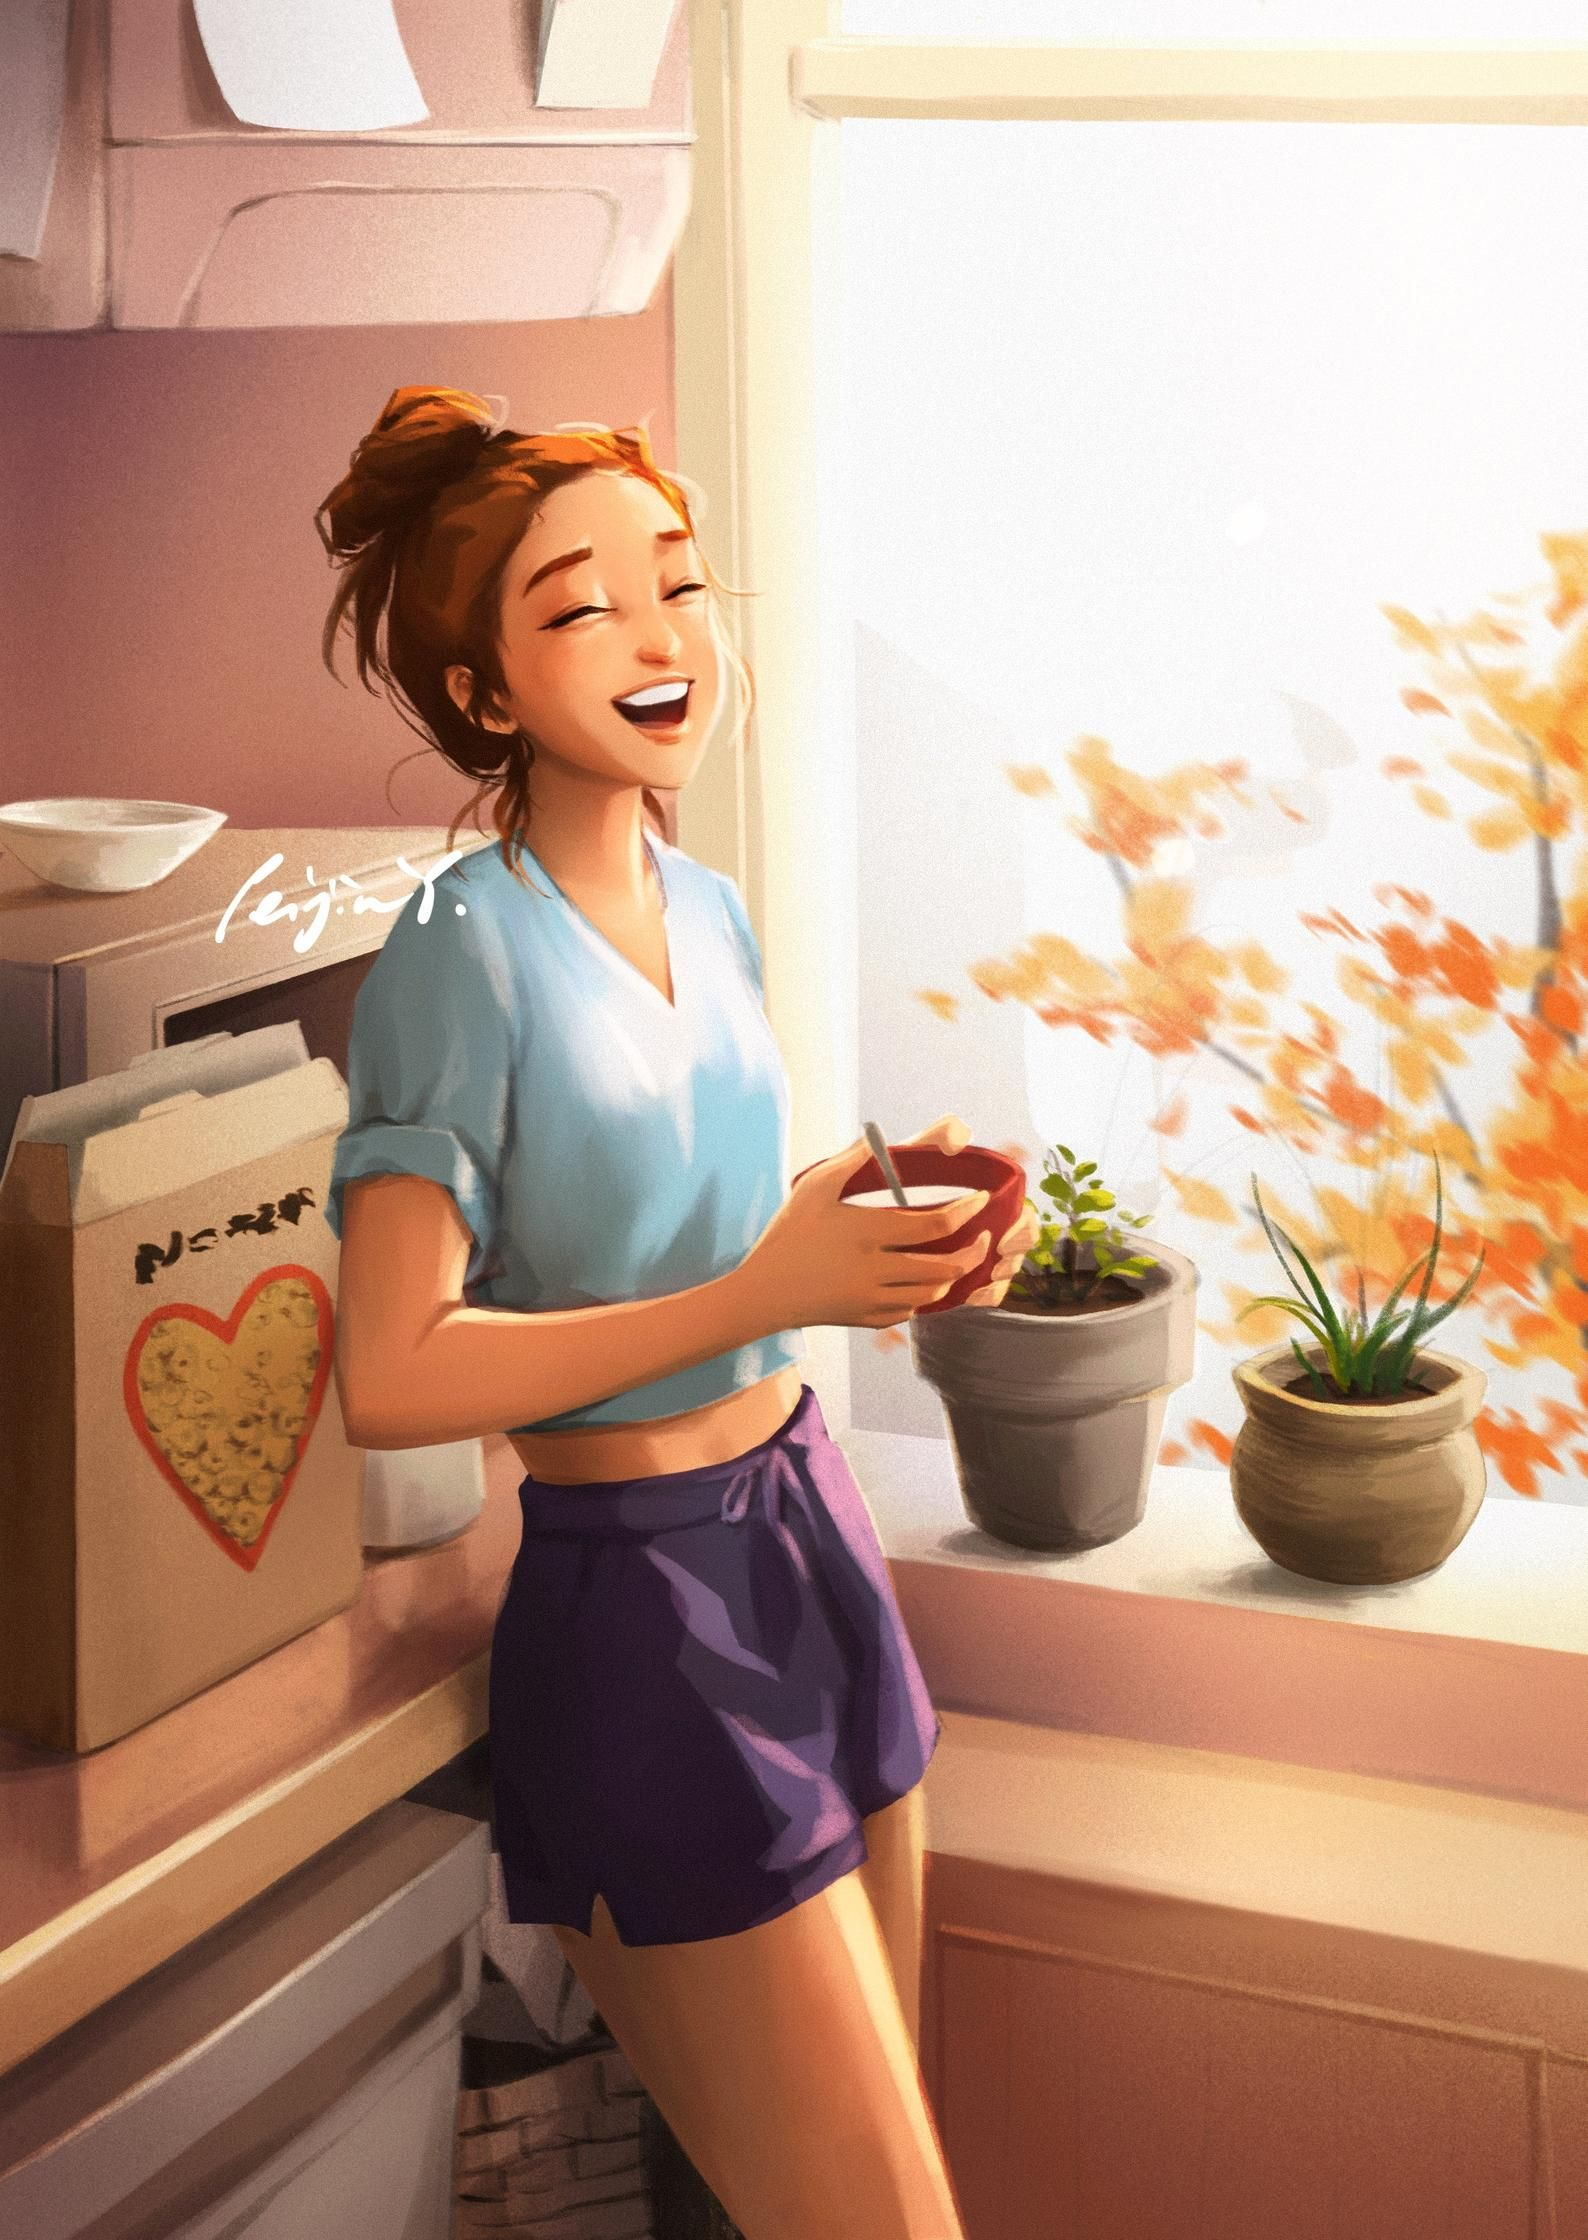 Happy Morning - Art Print - Morning Art - Breakfast Time - In The Kitchen - Cereal Lover - Cozy Home - Peijin